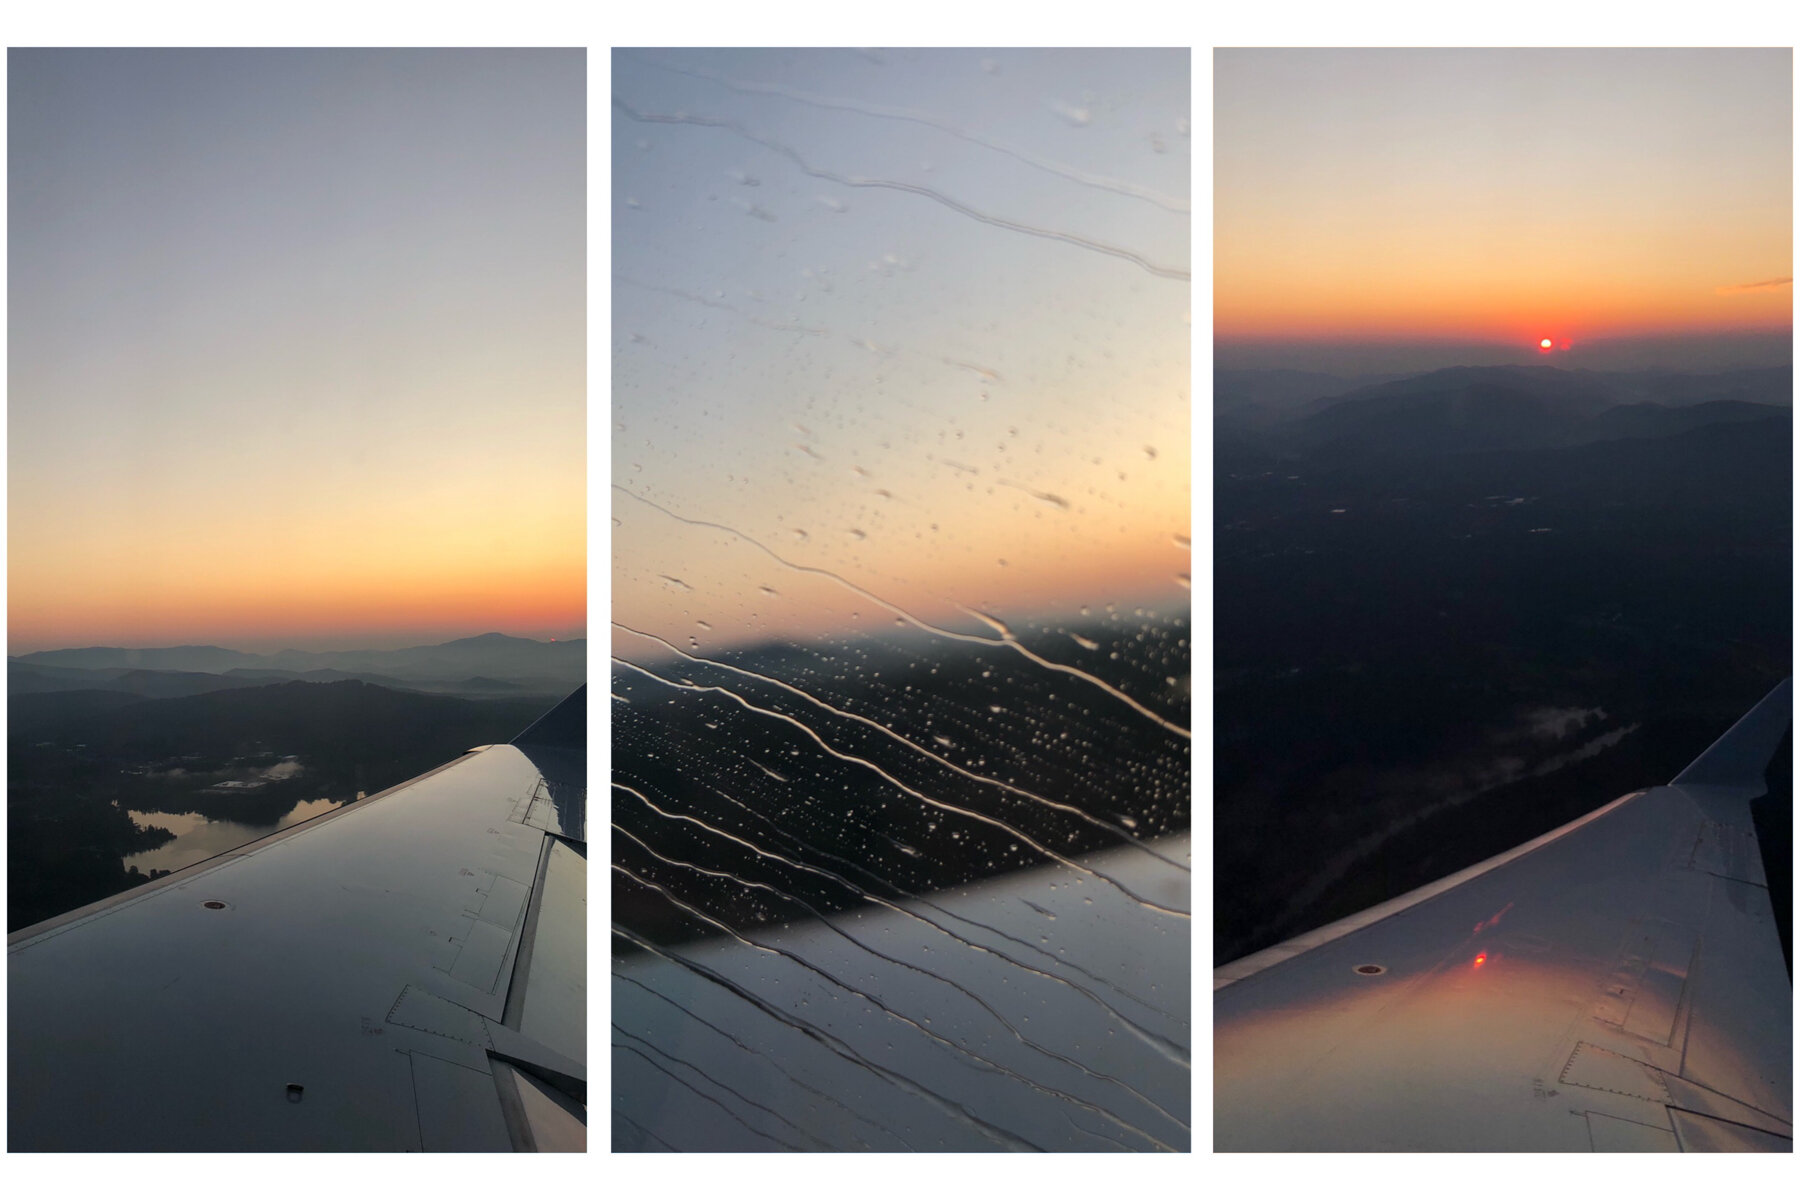 Our early morning flight allowed us to see the sun rise over the mountains.